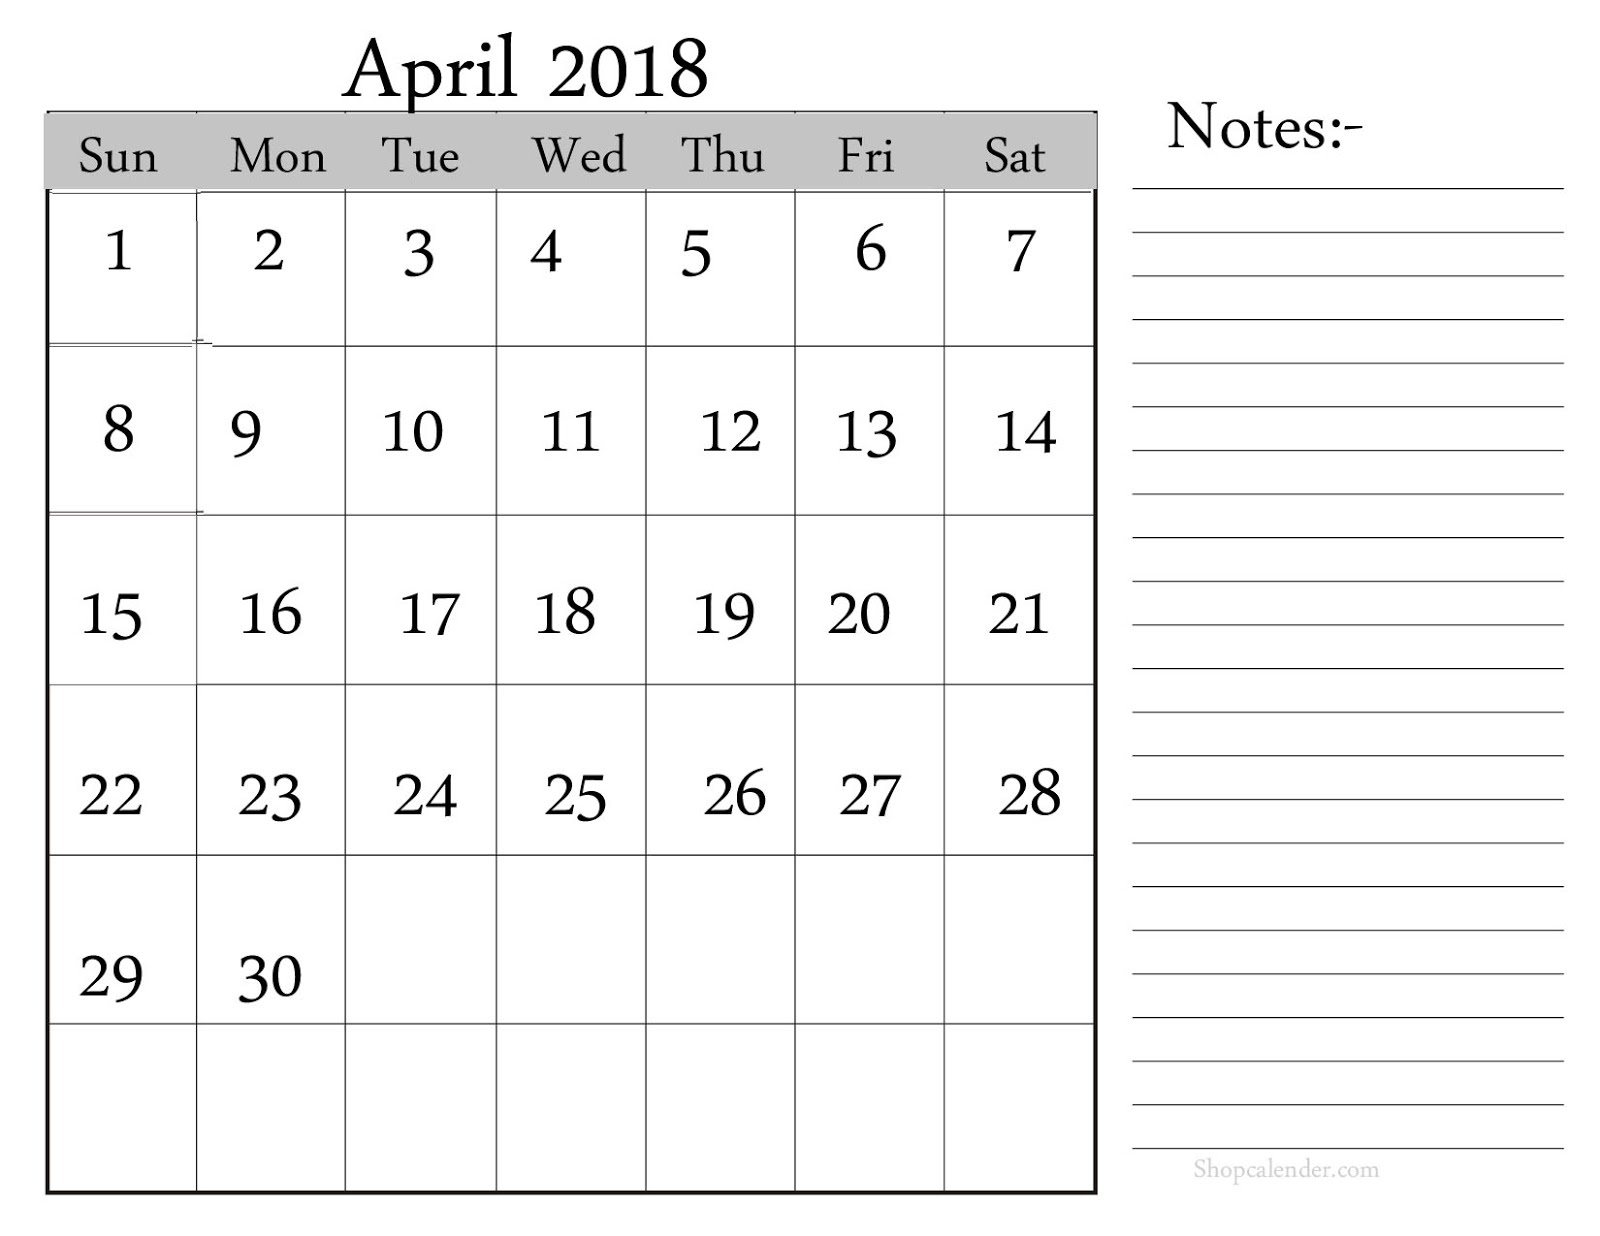 calendar with notes section